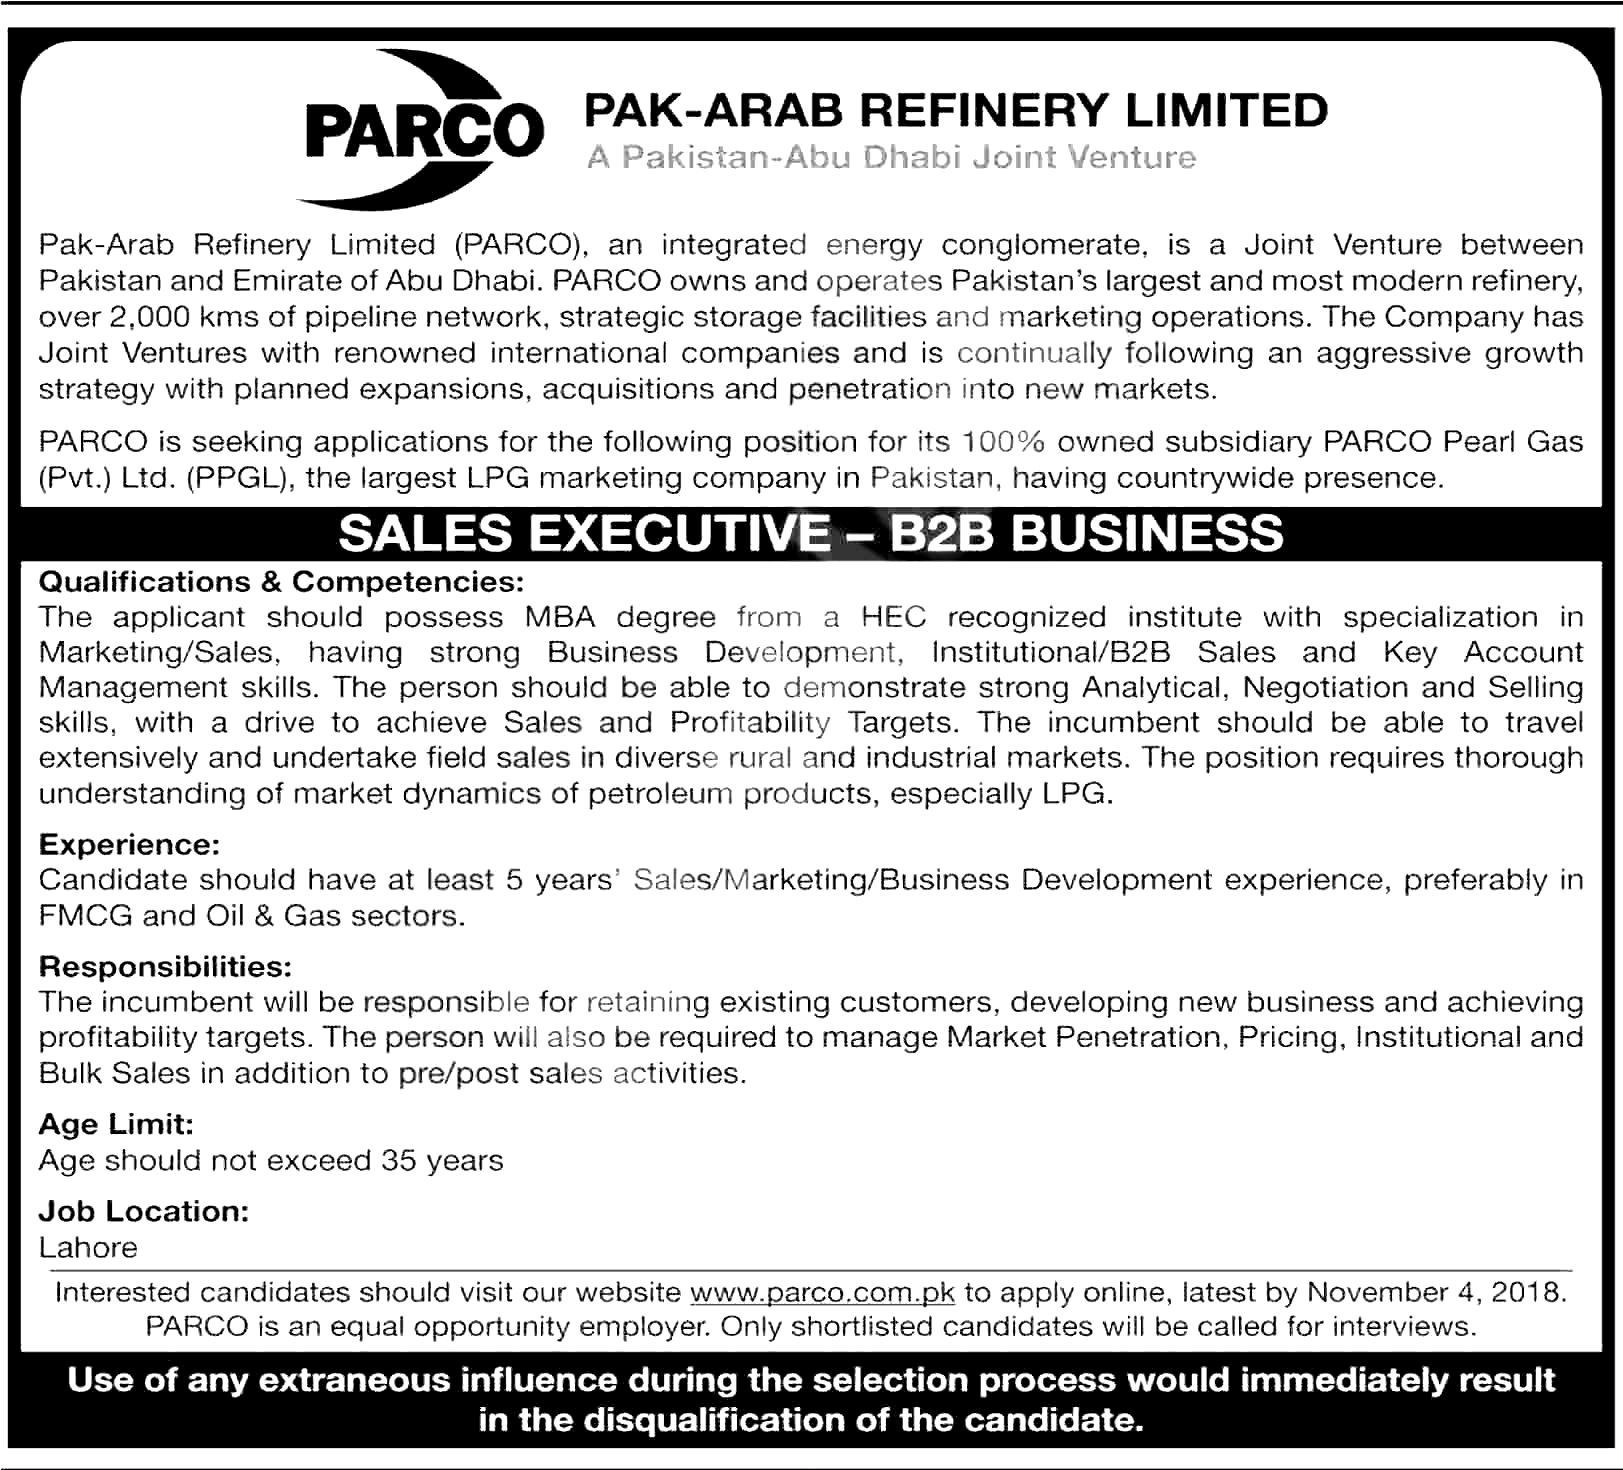 PARCO Pakistan Jobs 2018 Download Application form online